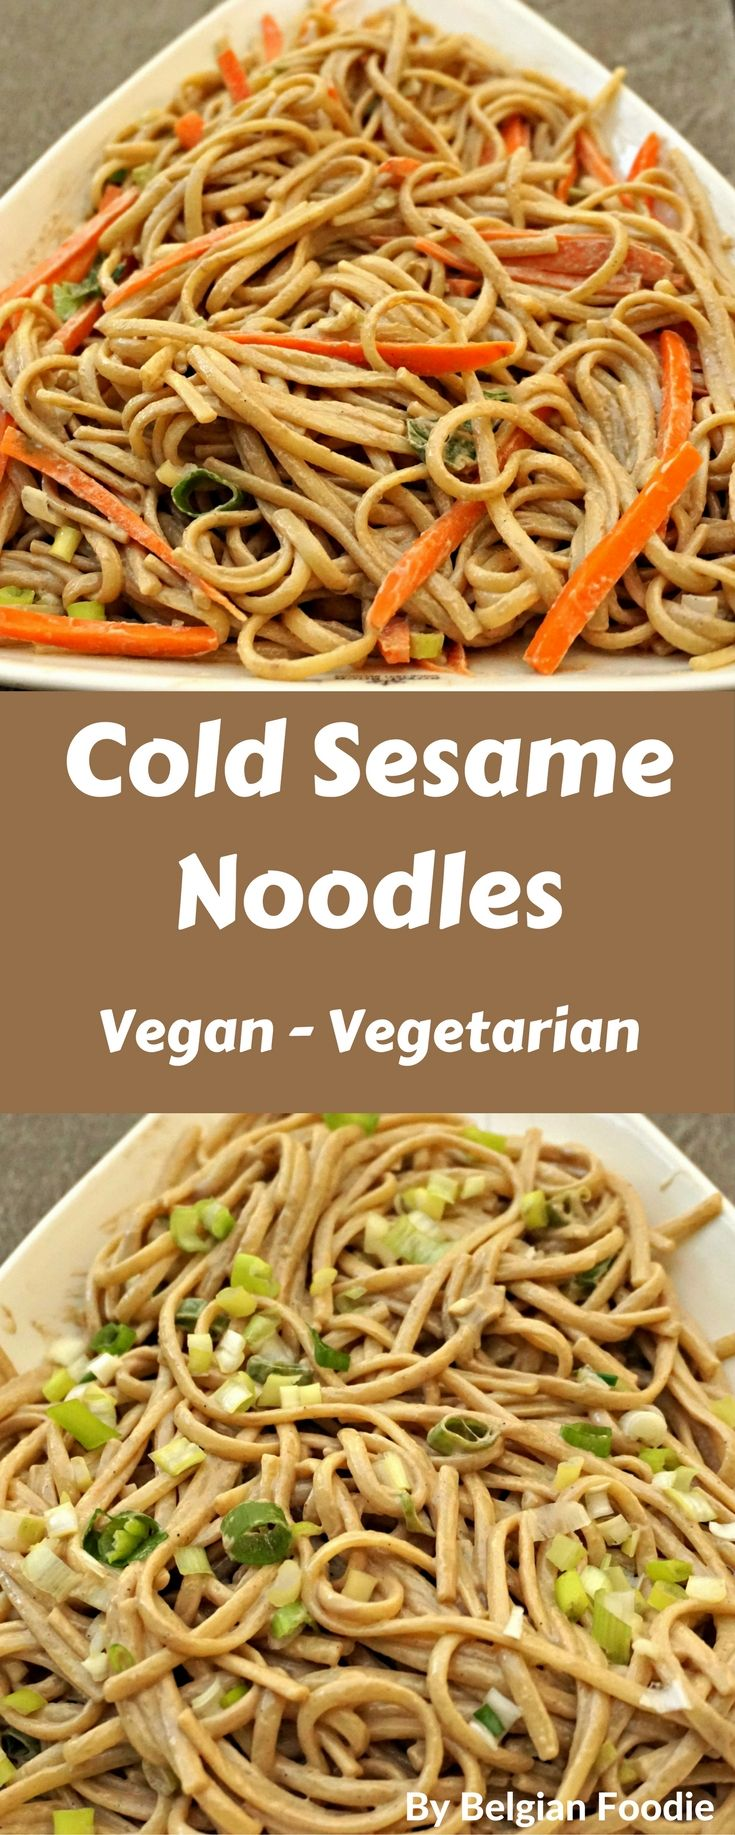 Tasty Healthy Cold Sesame Noodles ready in about 30 minutes!